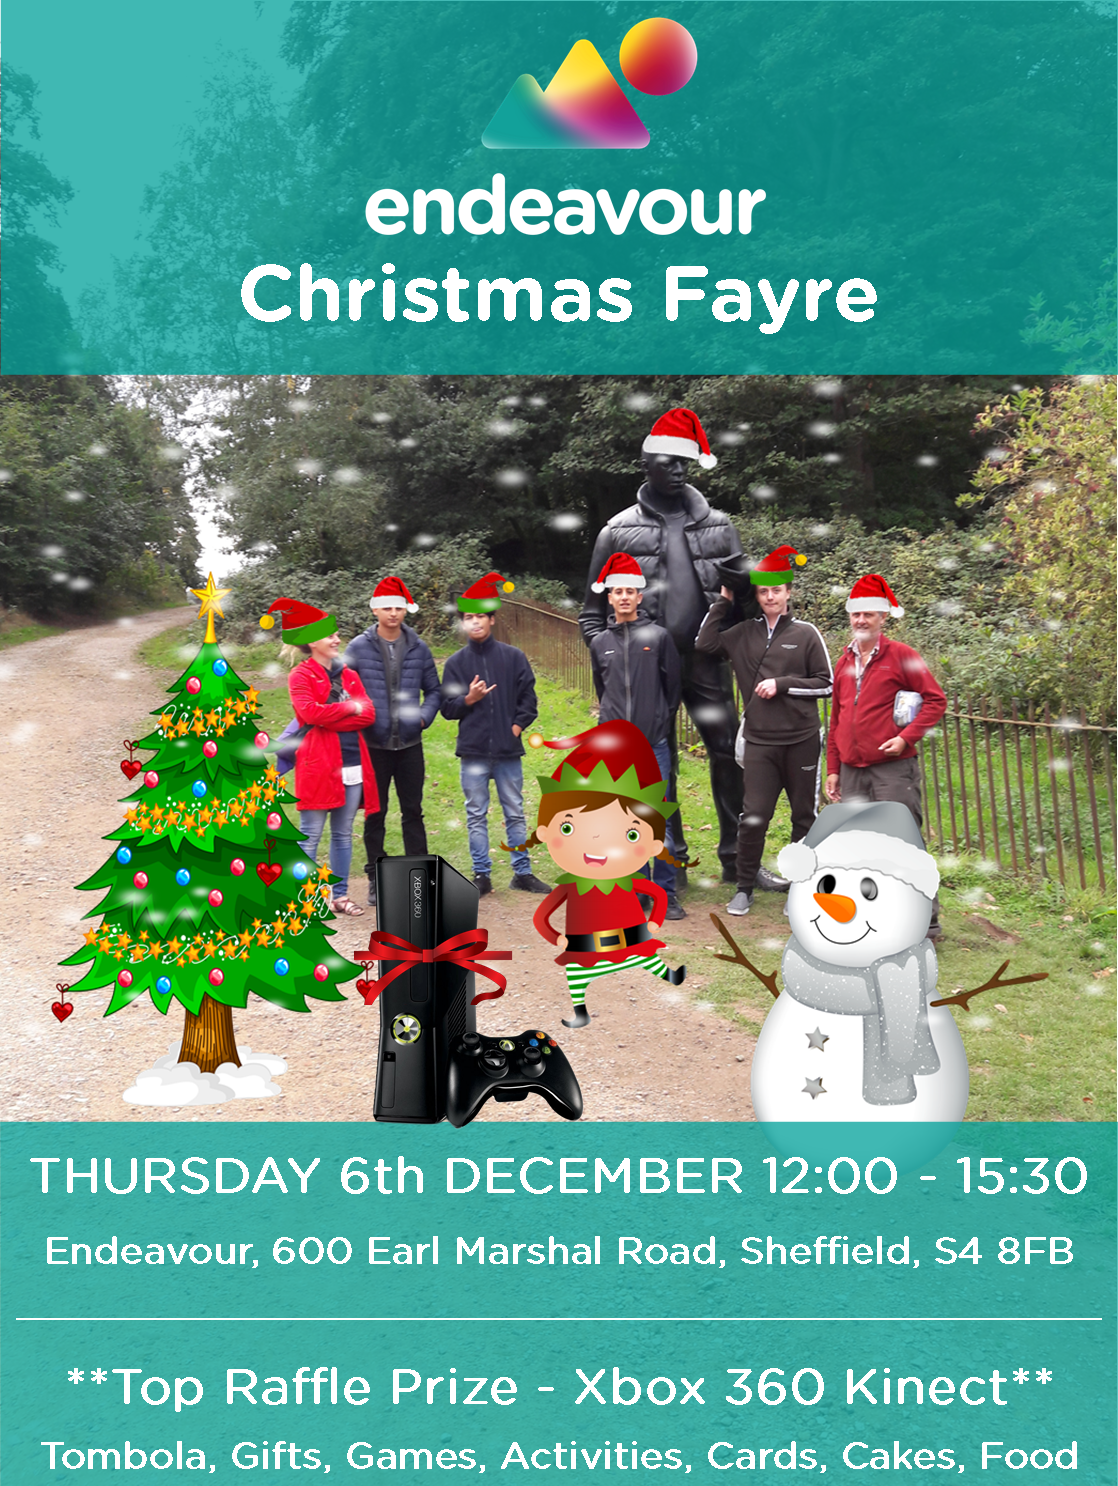 The Endeavour Christmas Fayre